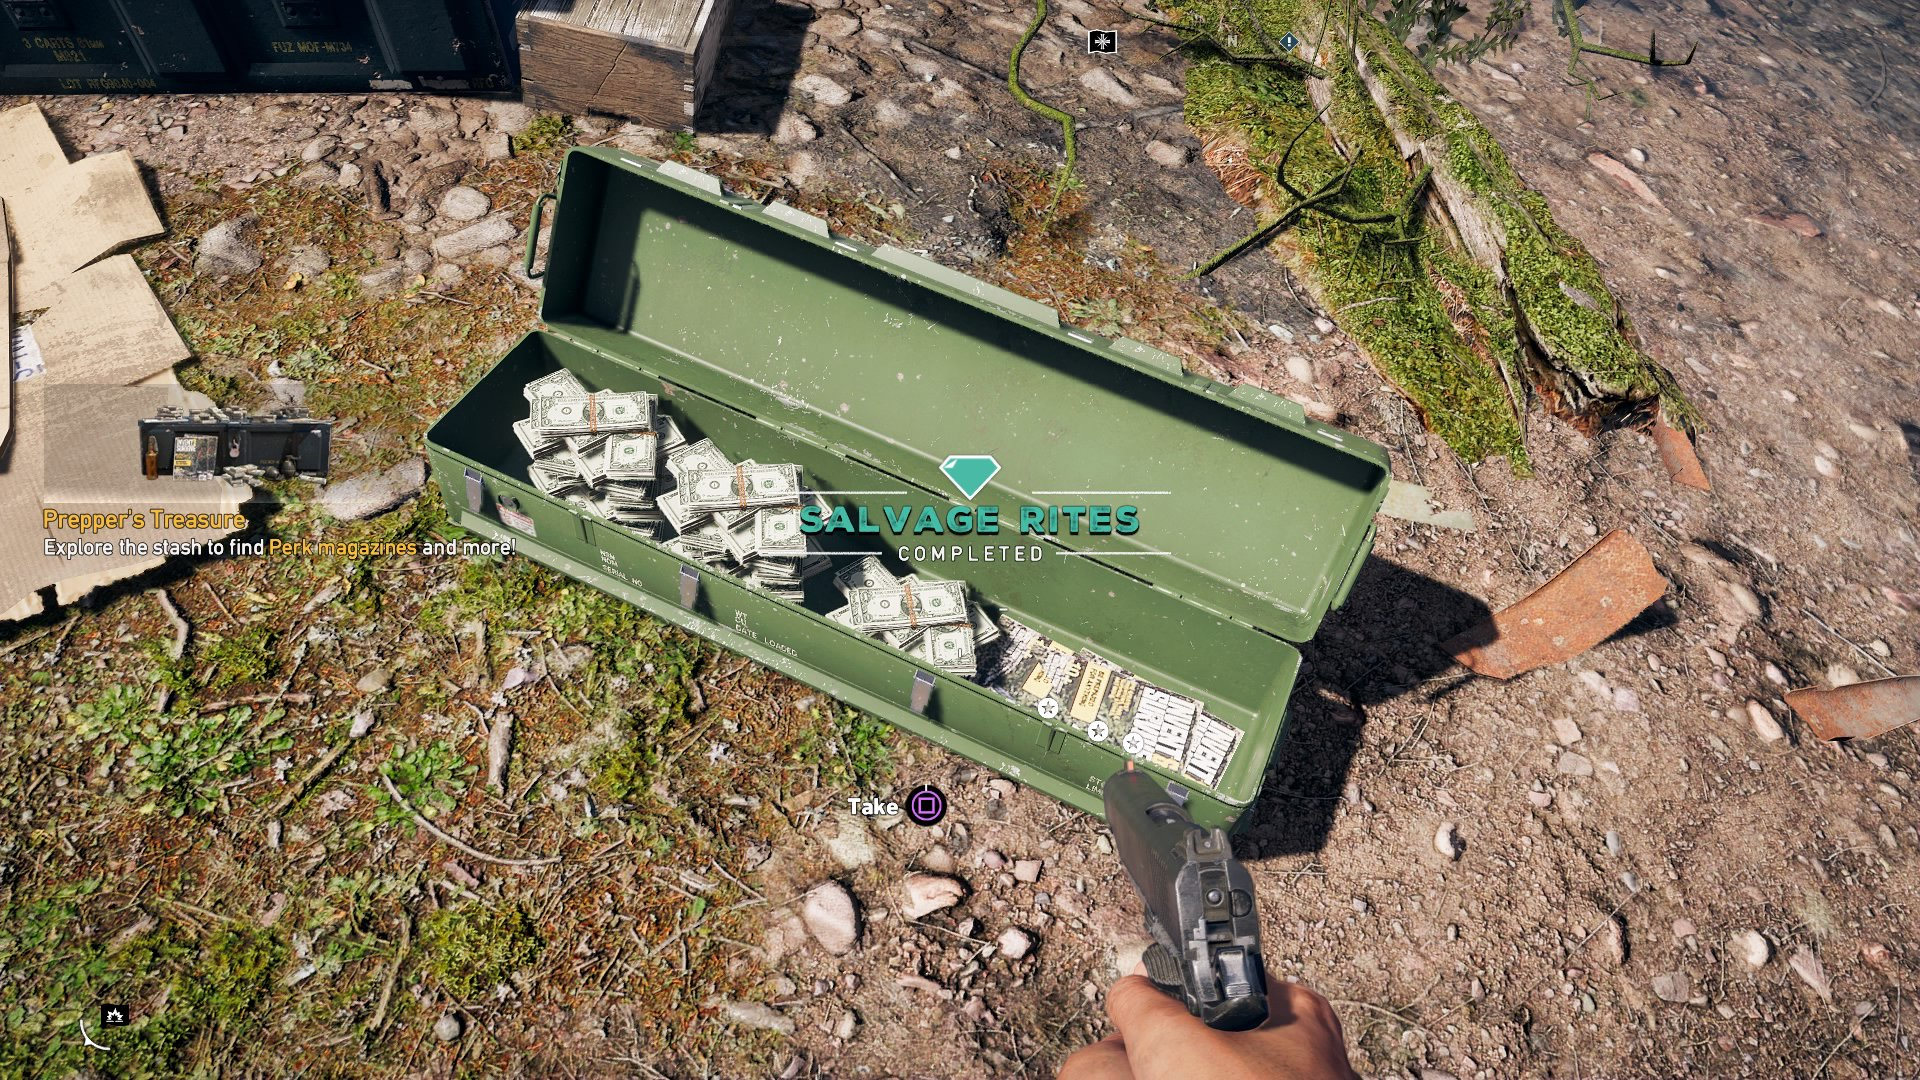 Man Cave Quest Far Cry 5 : Far cry prepper stash locations all stashes in